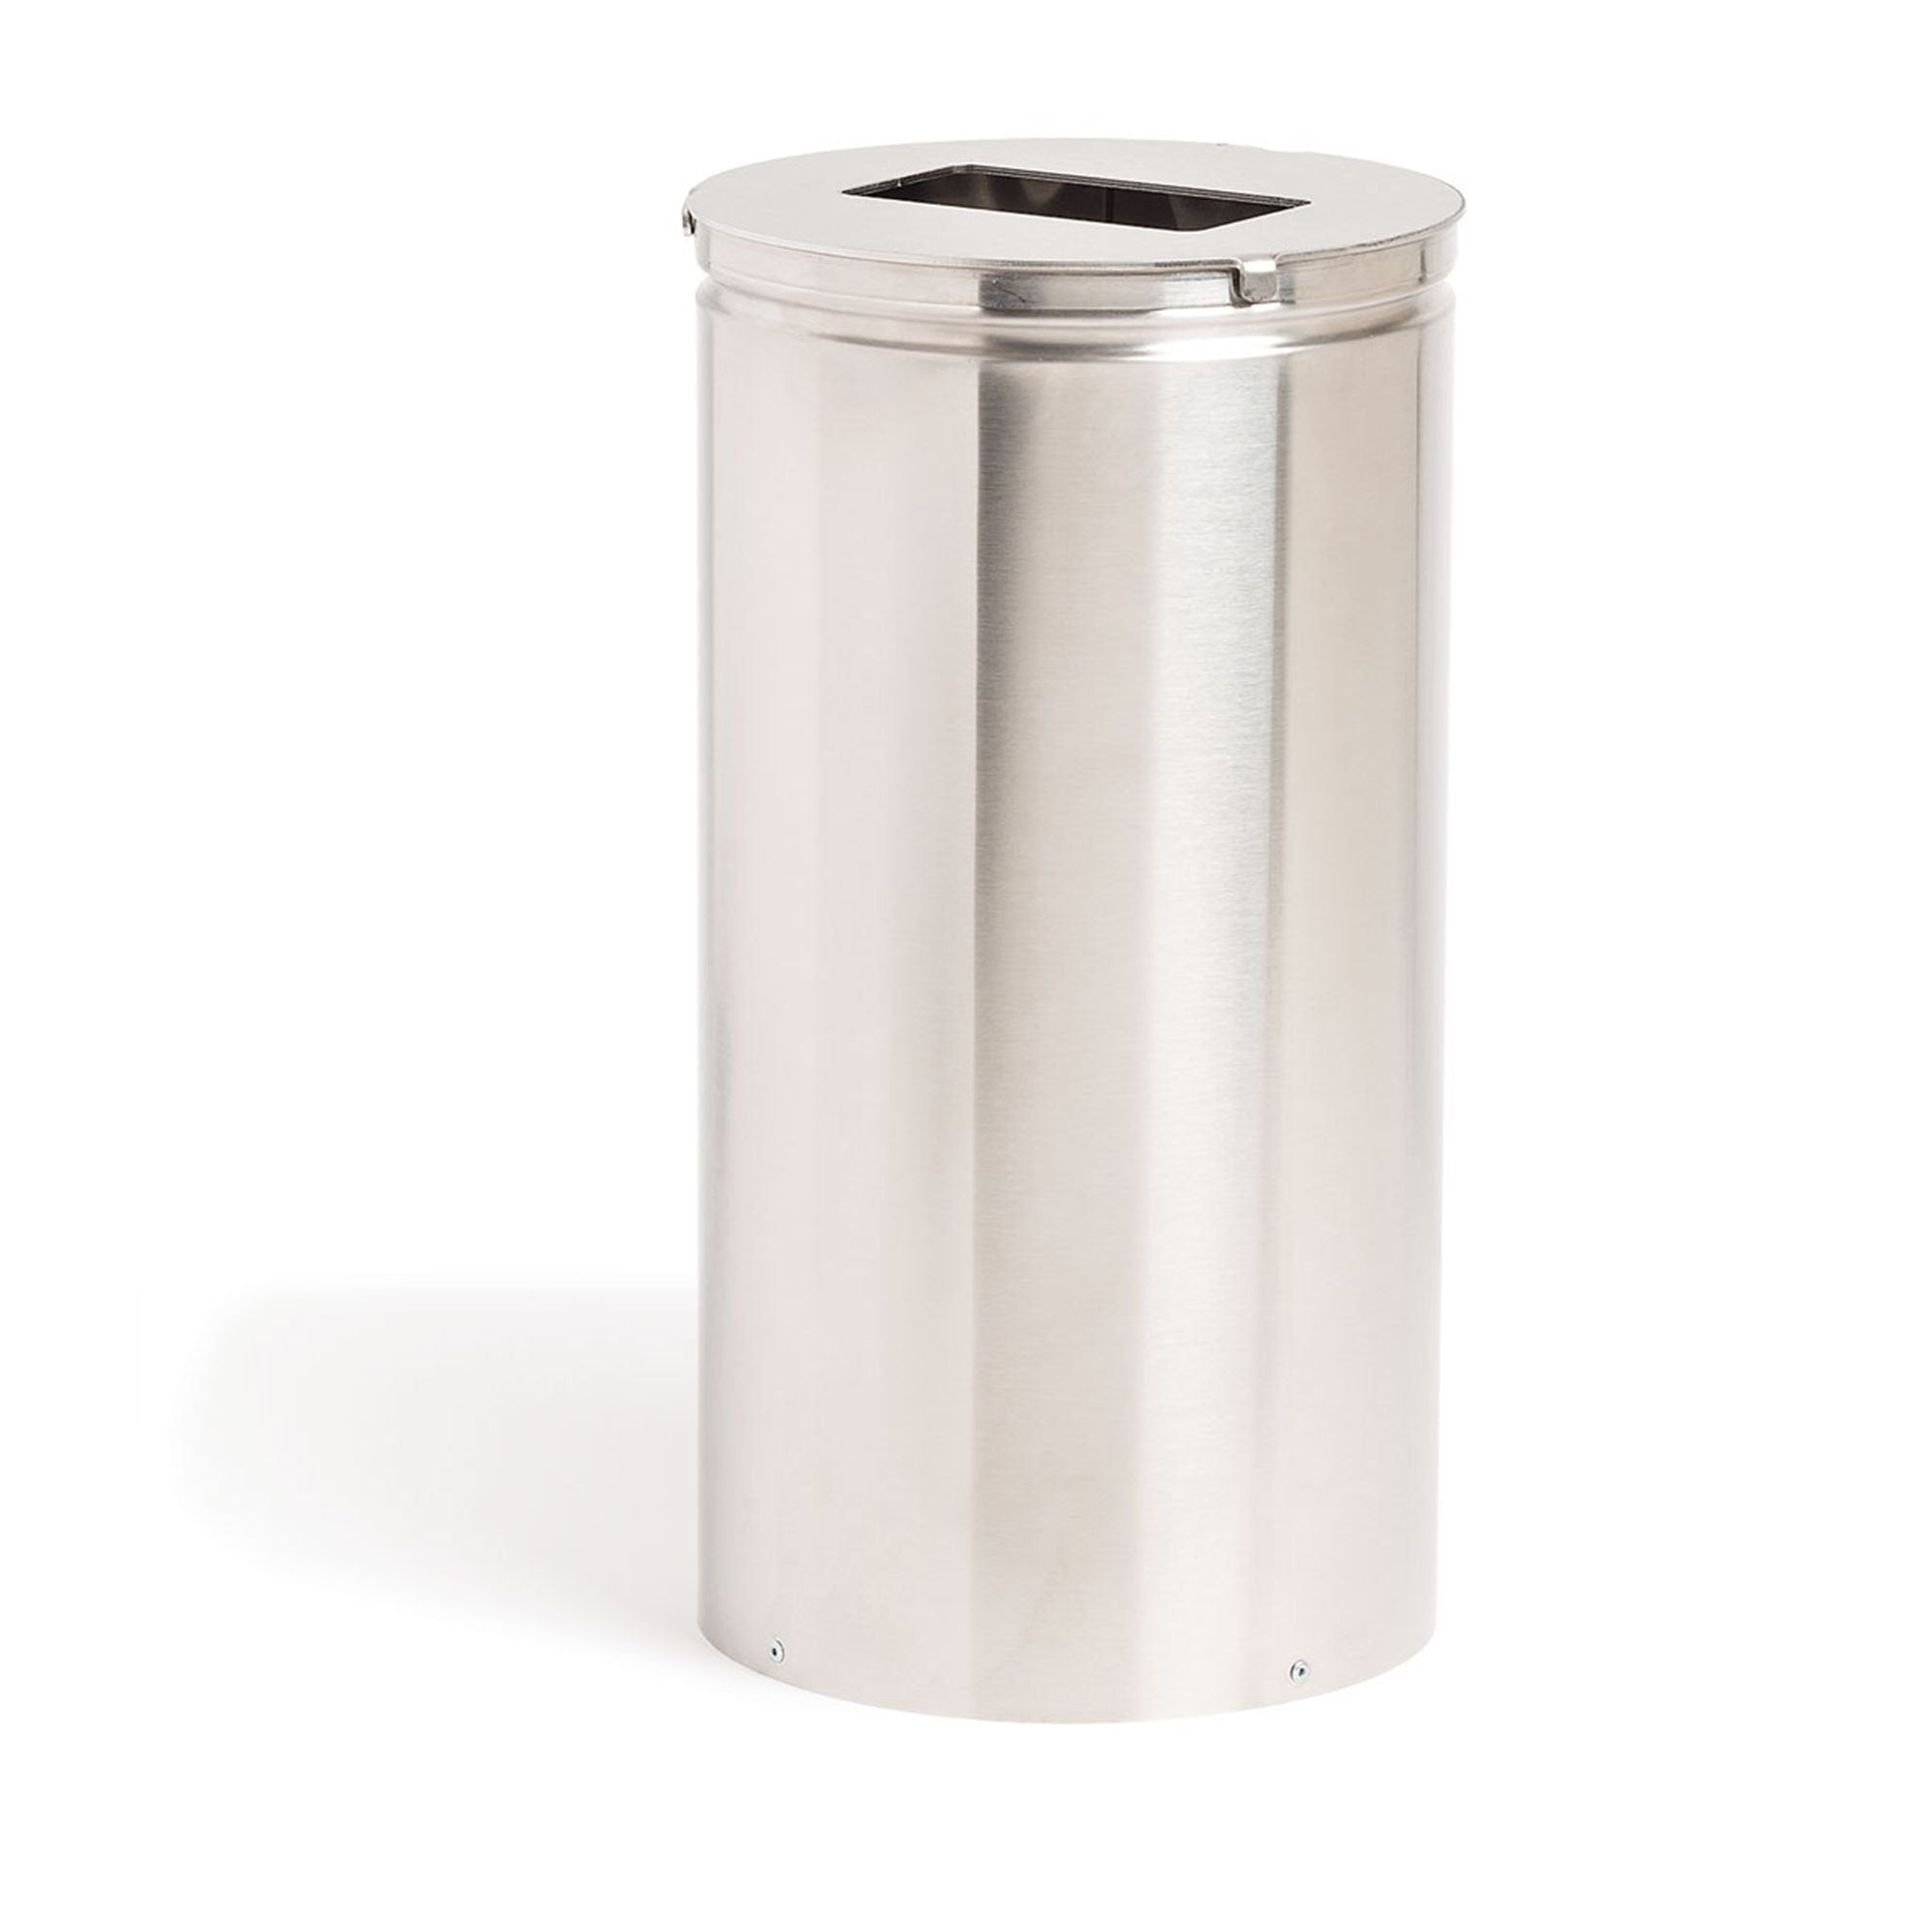 Stainless Steel Trash Can with No-Touch